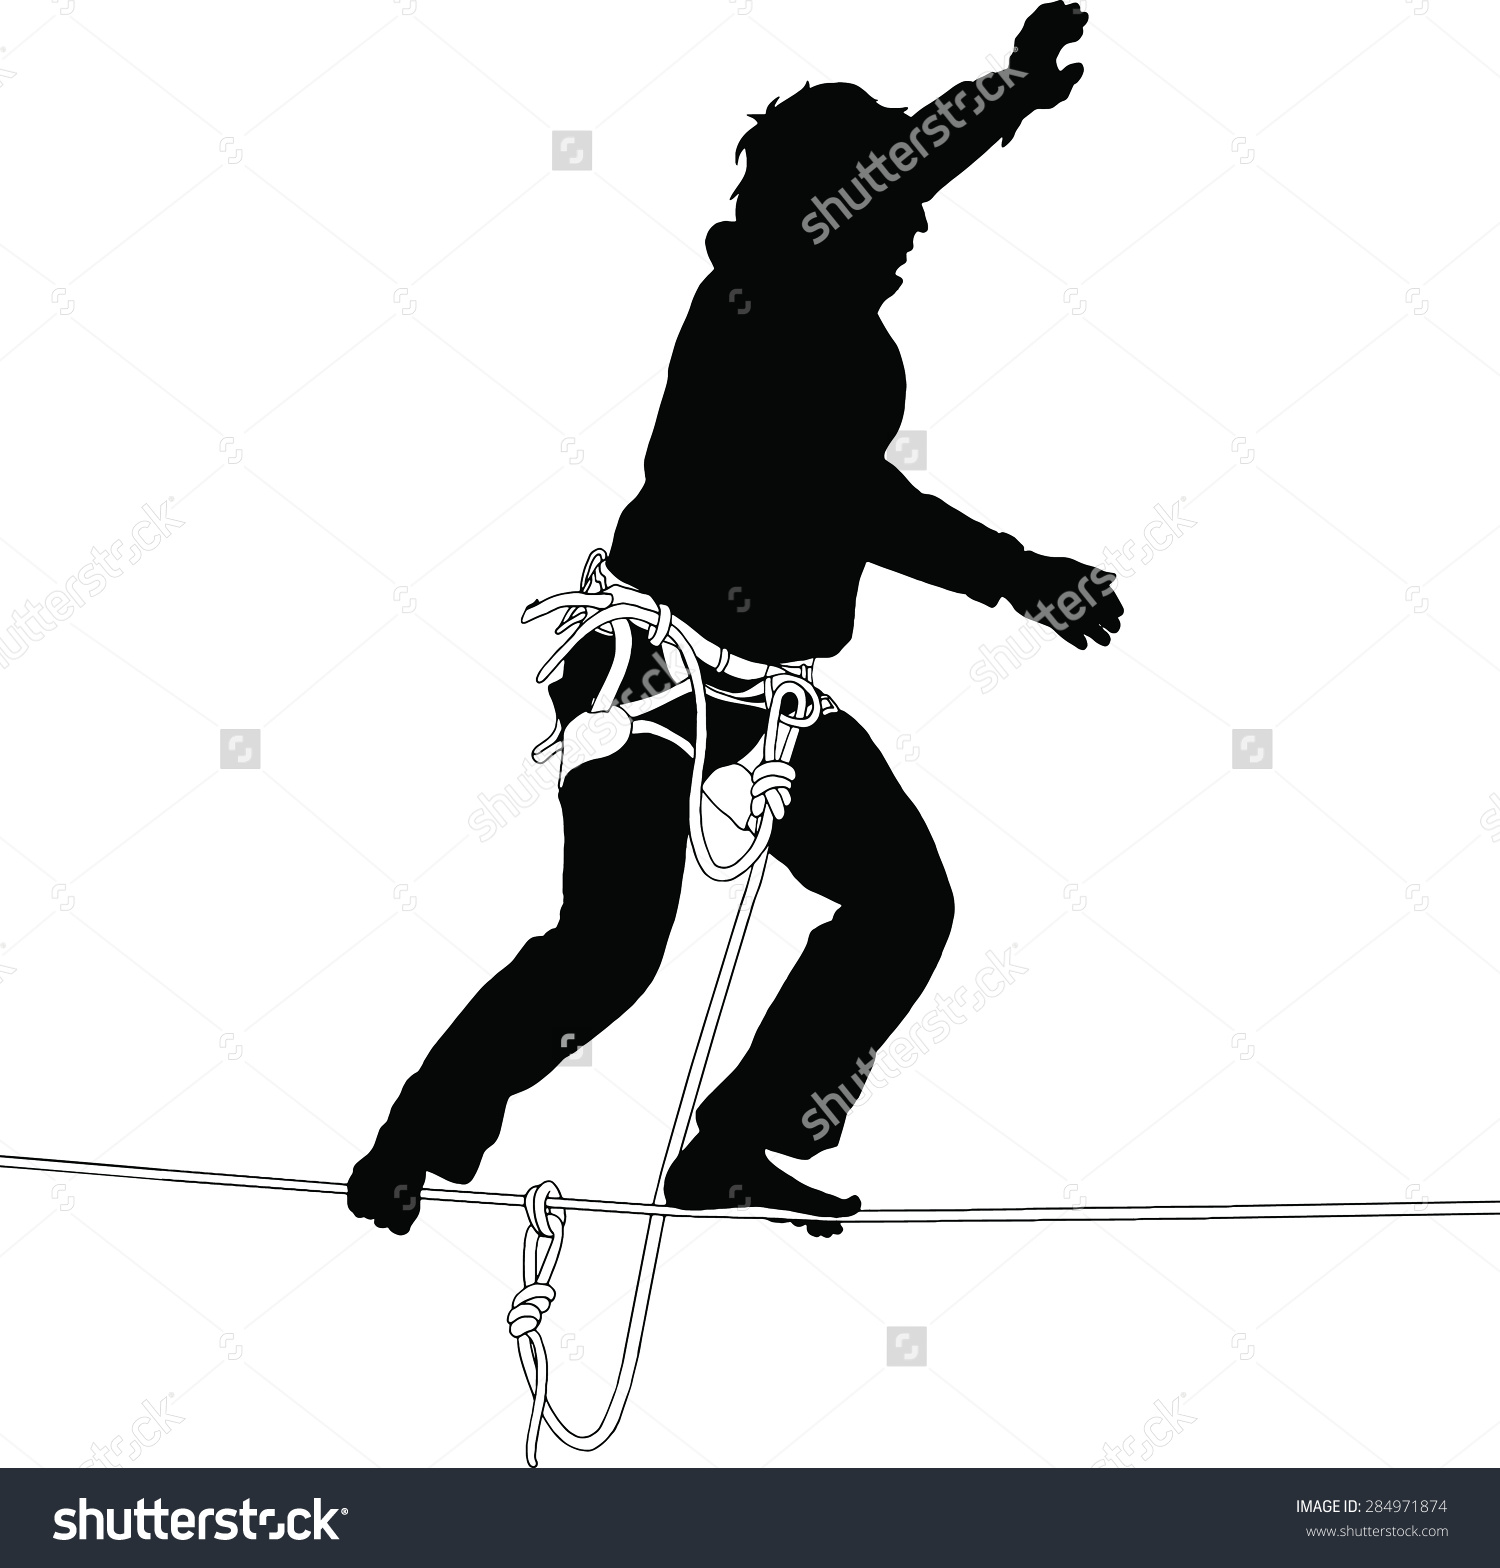 Silhouette Man Standing On Highline Safety Stock Vector 284971874.